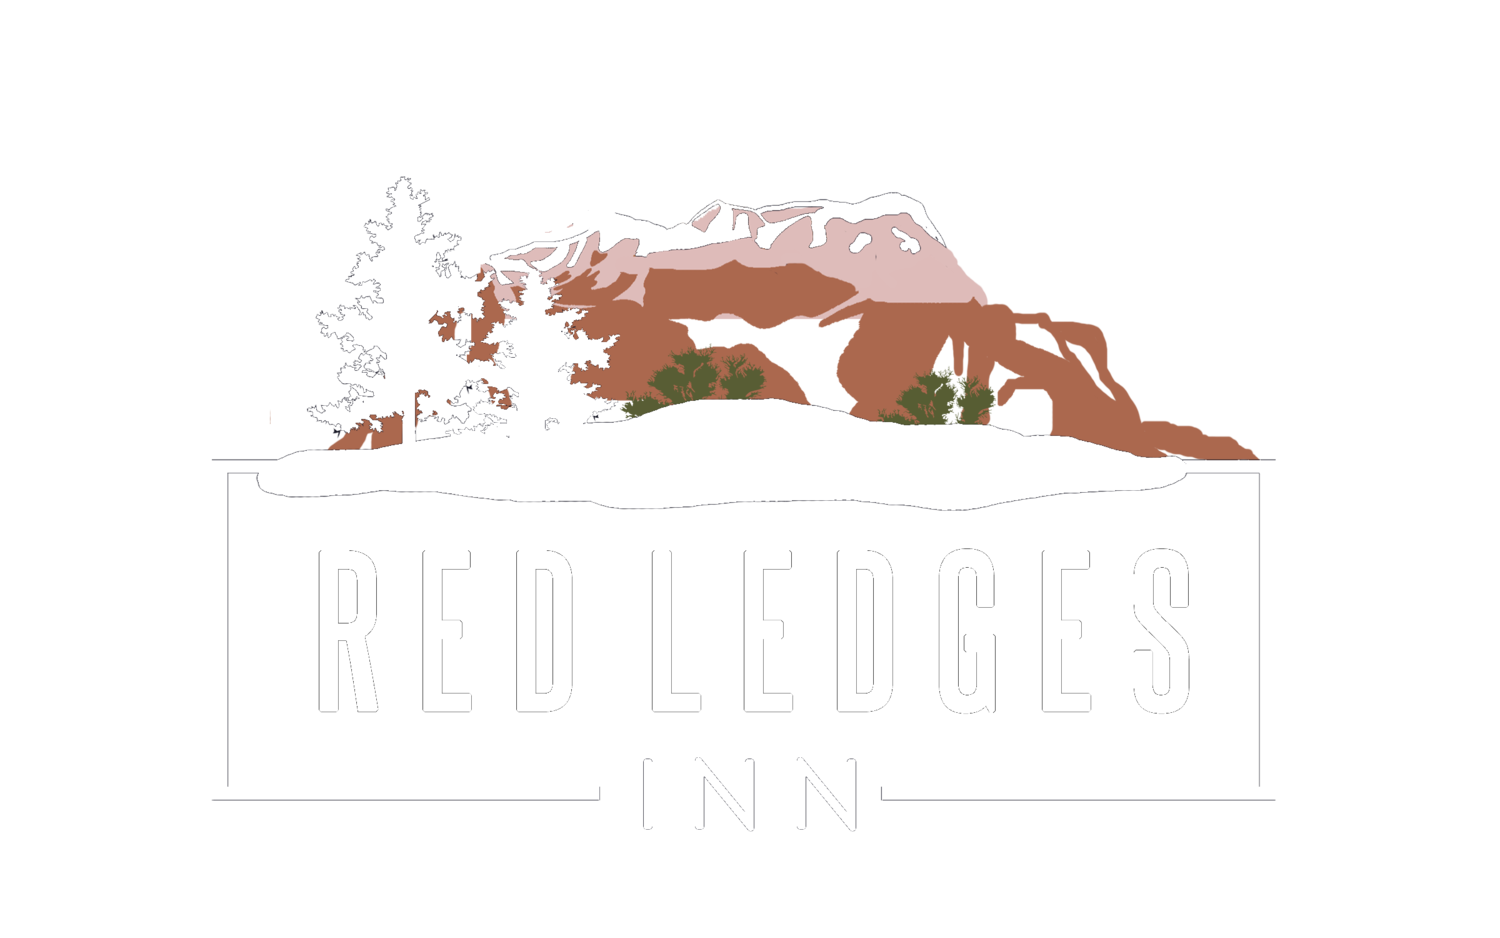 Red Ledges Inn